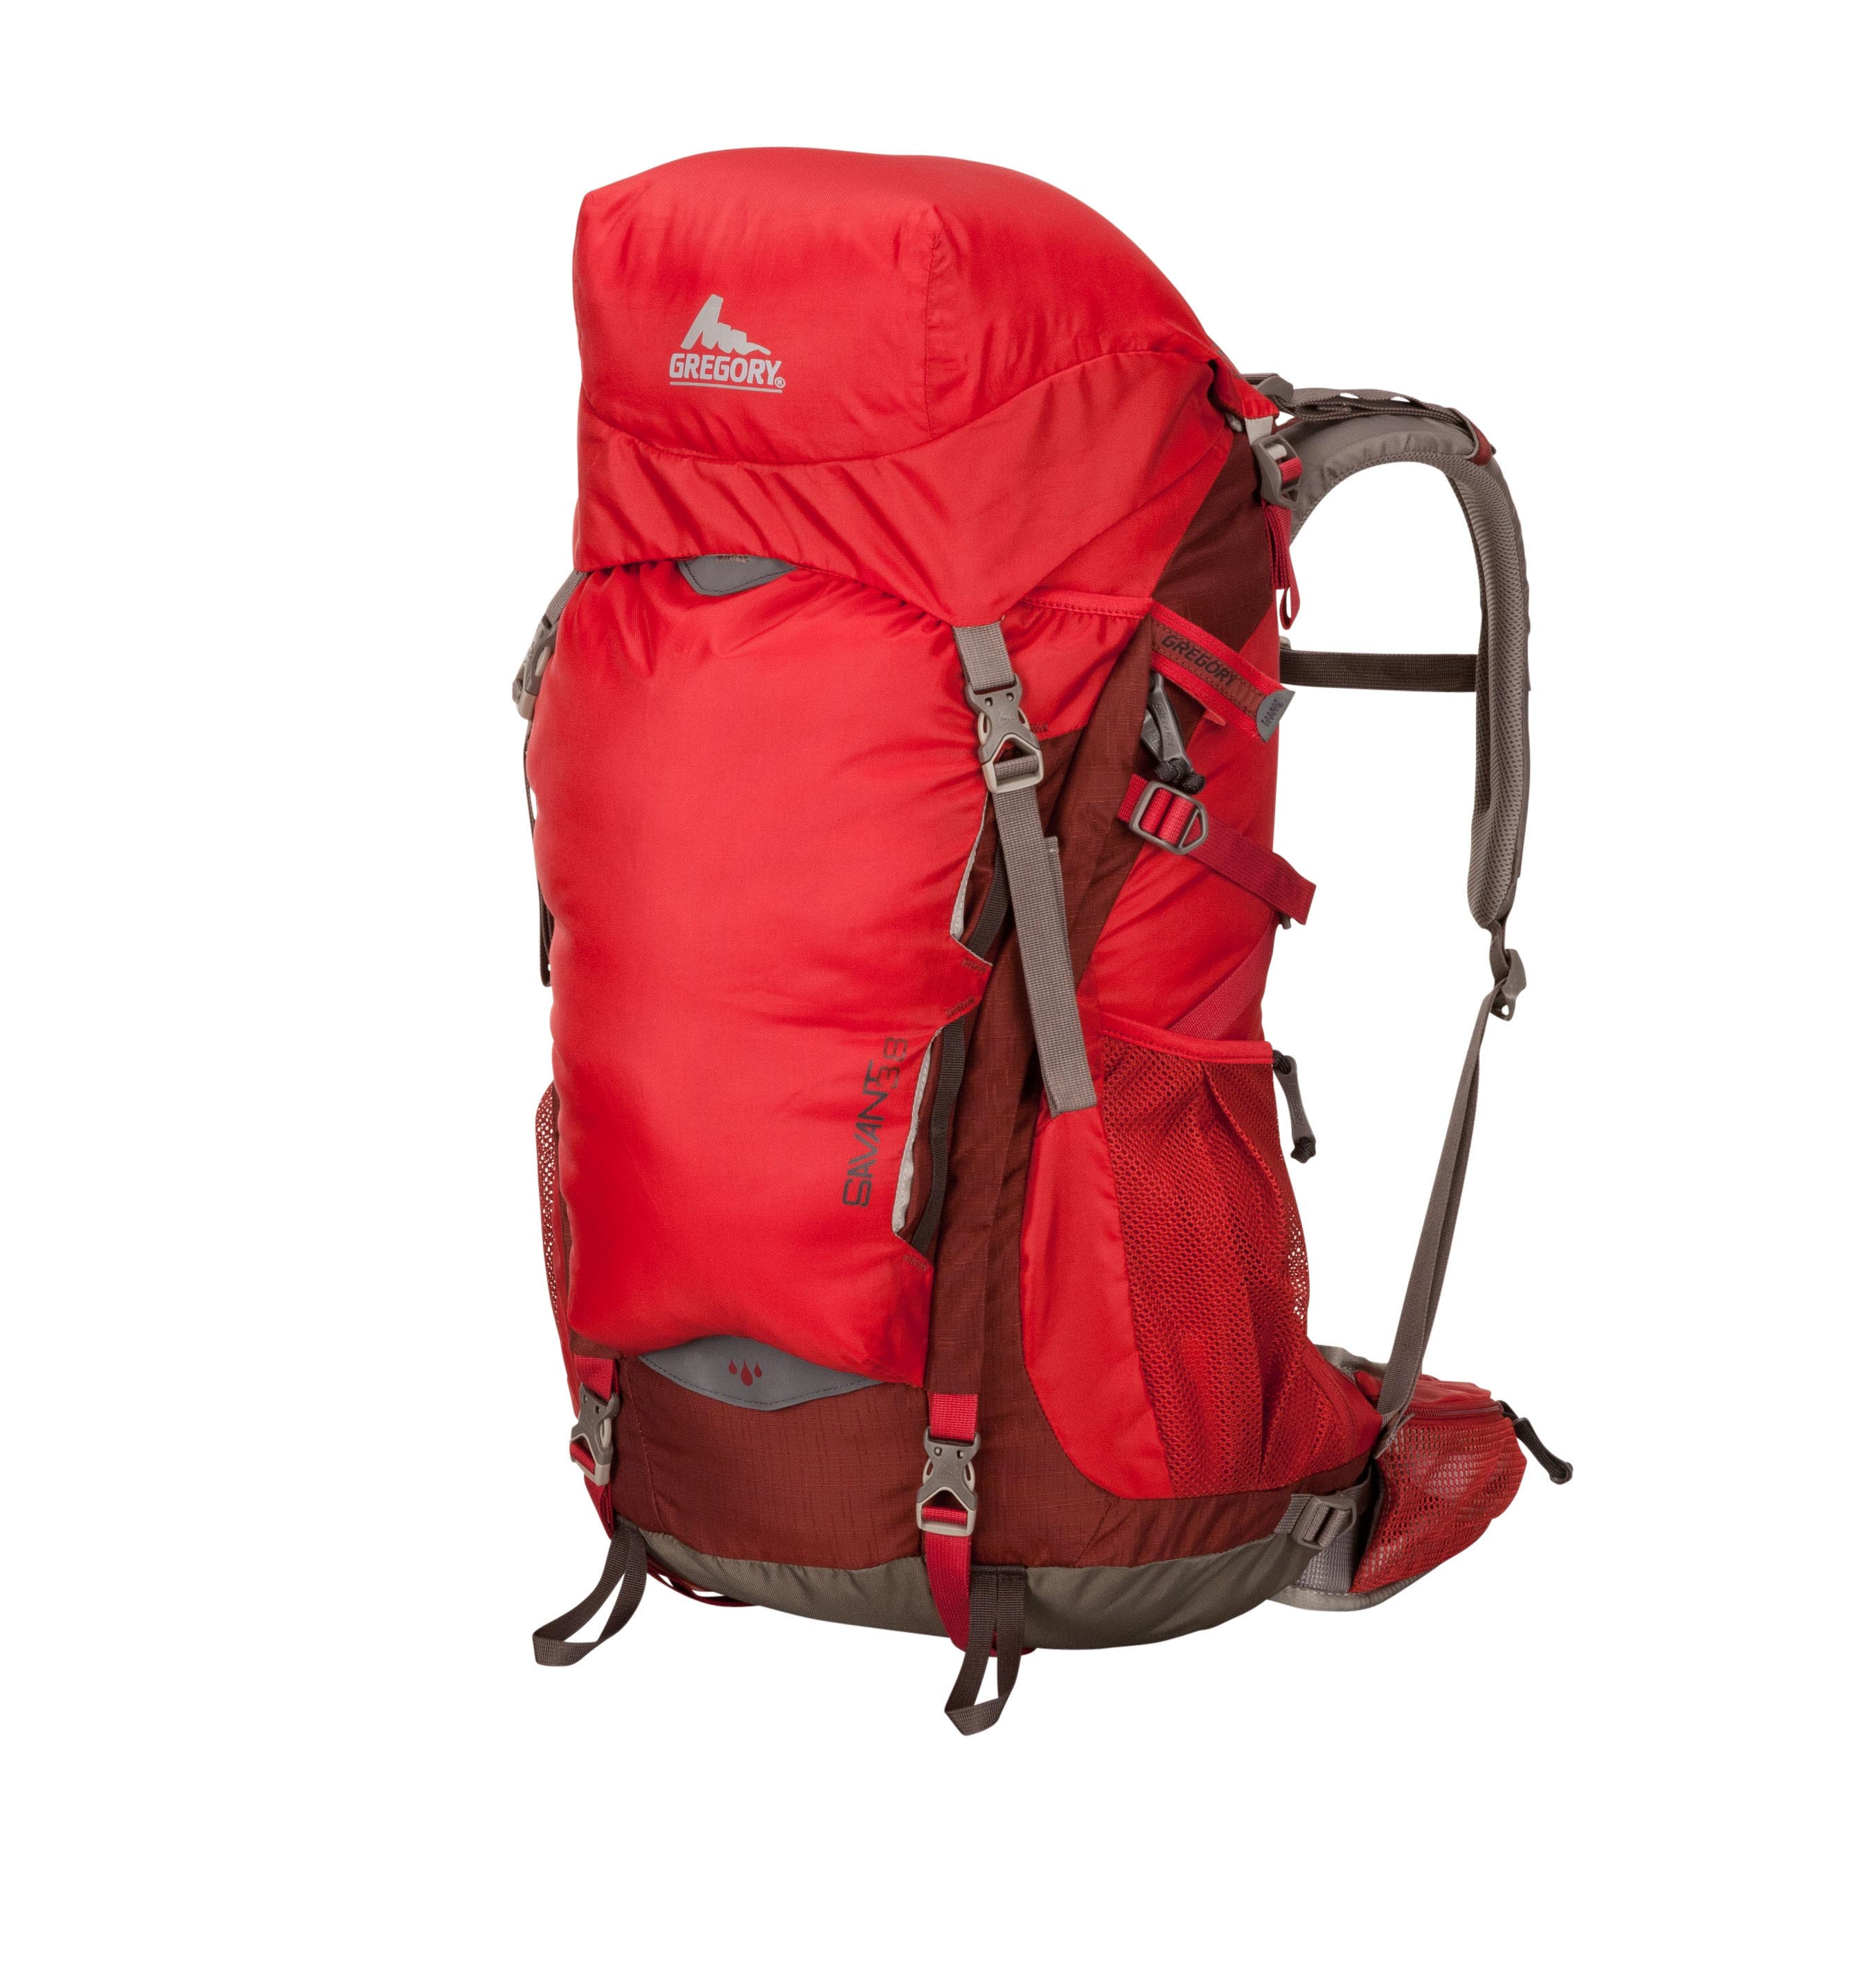 Gregory Savant 38 Cinder Cone Red-30